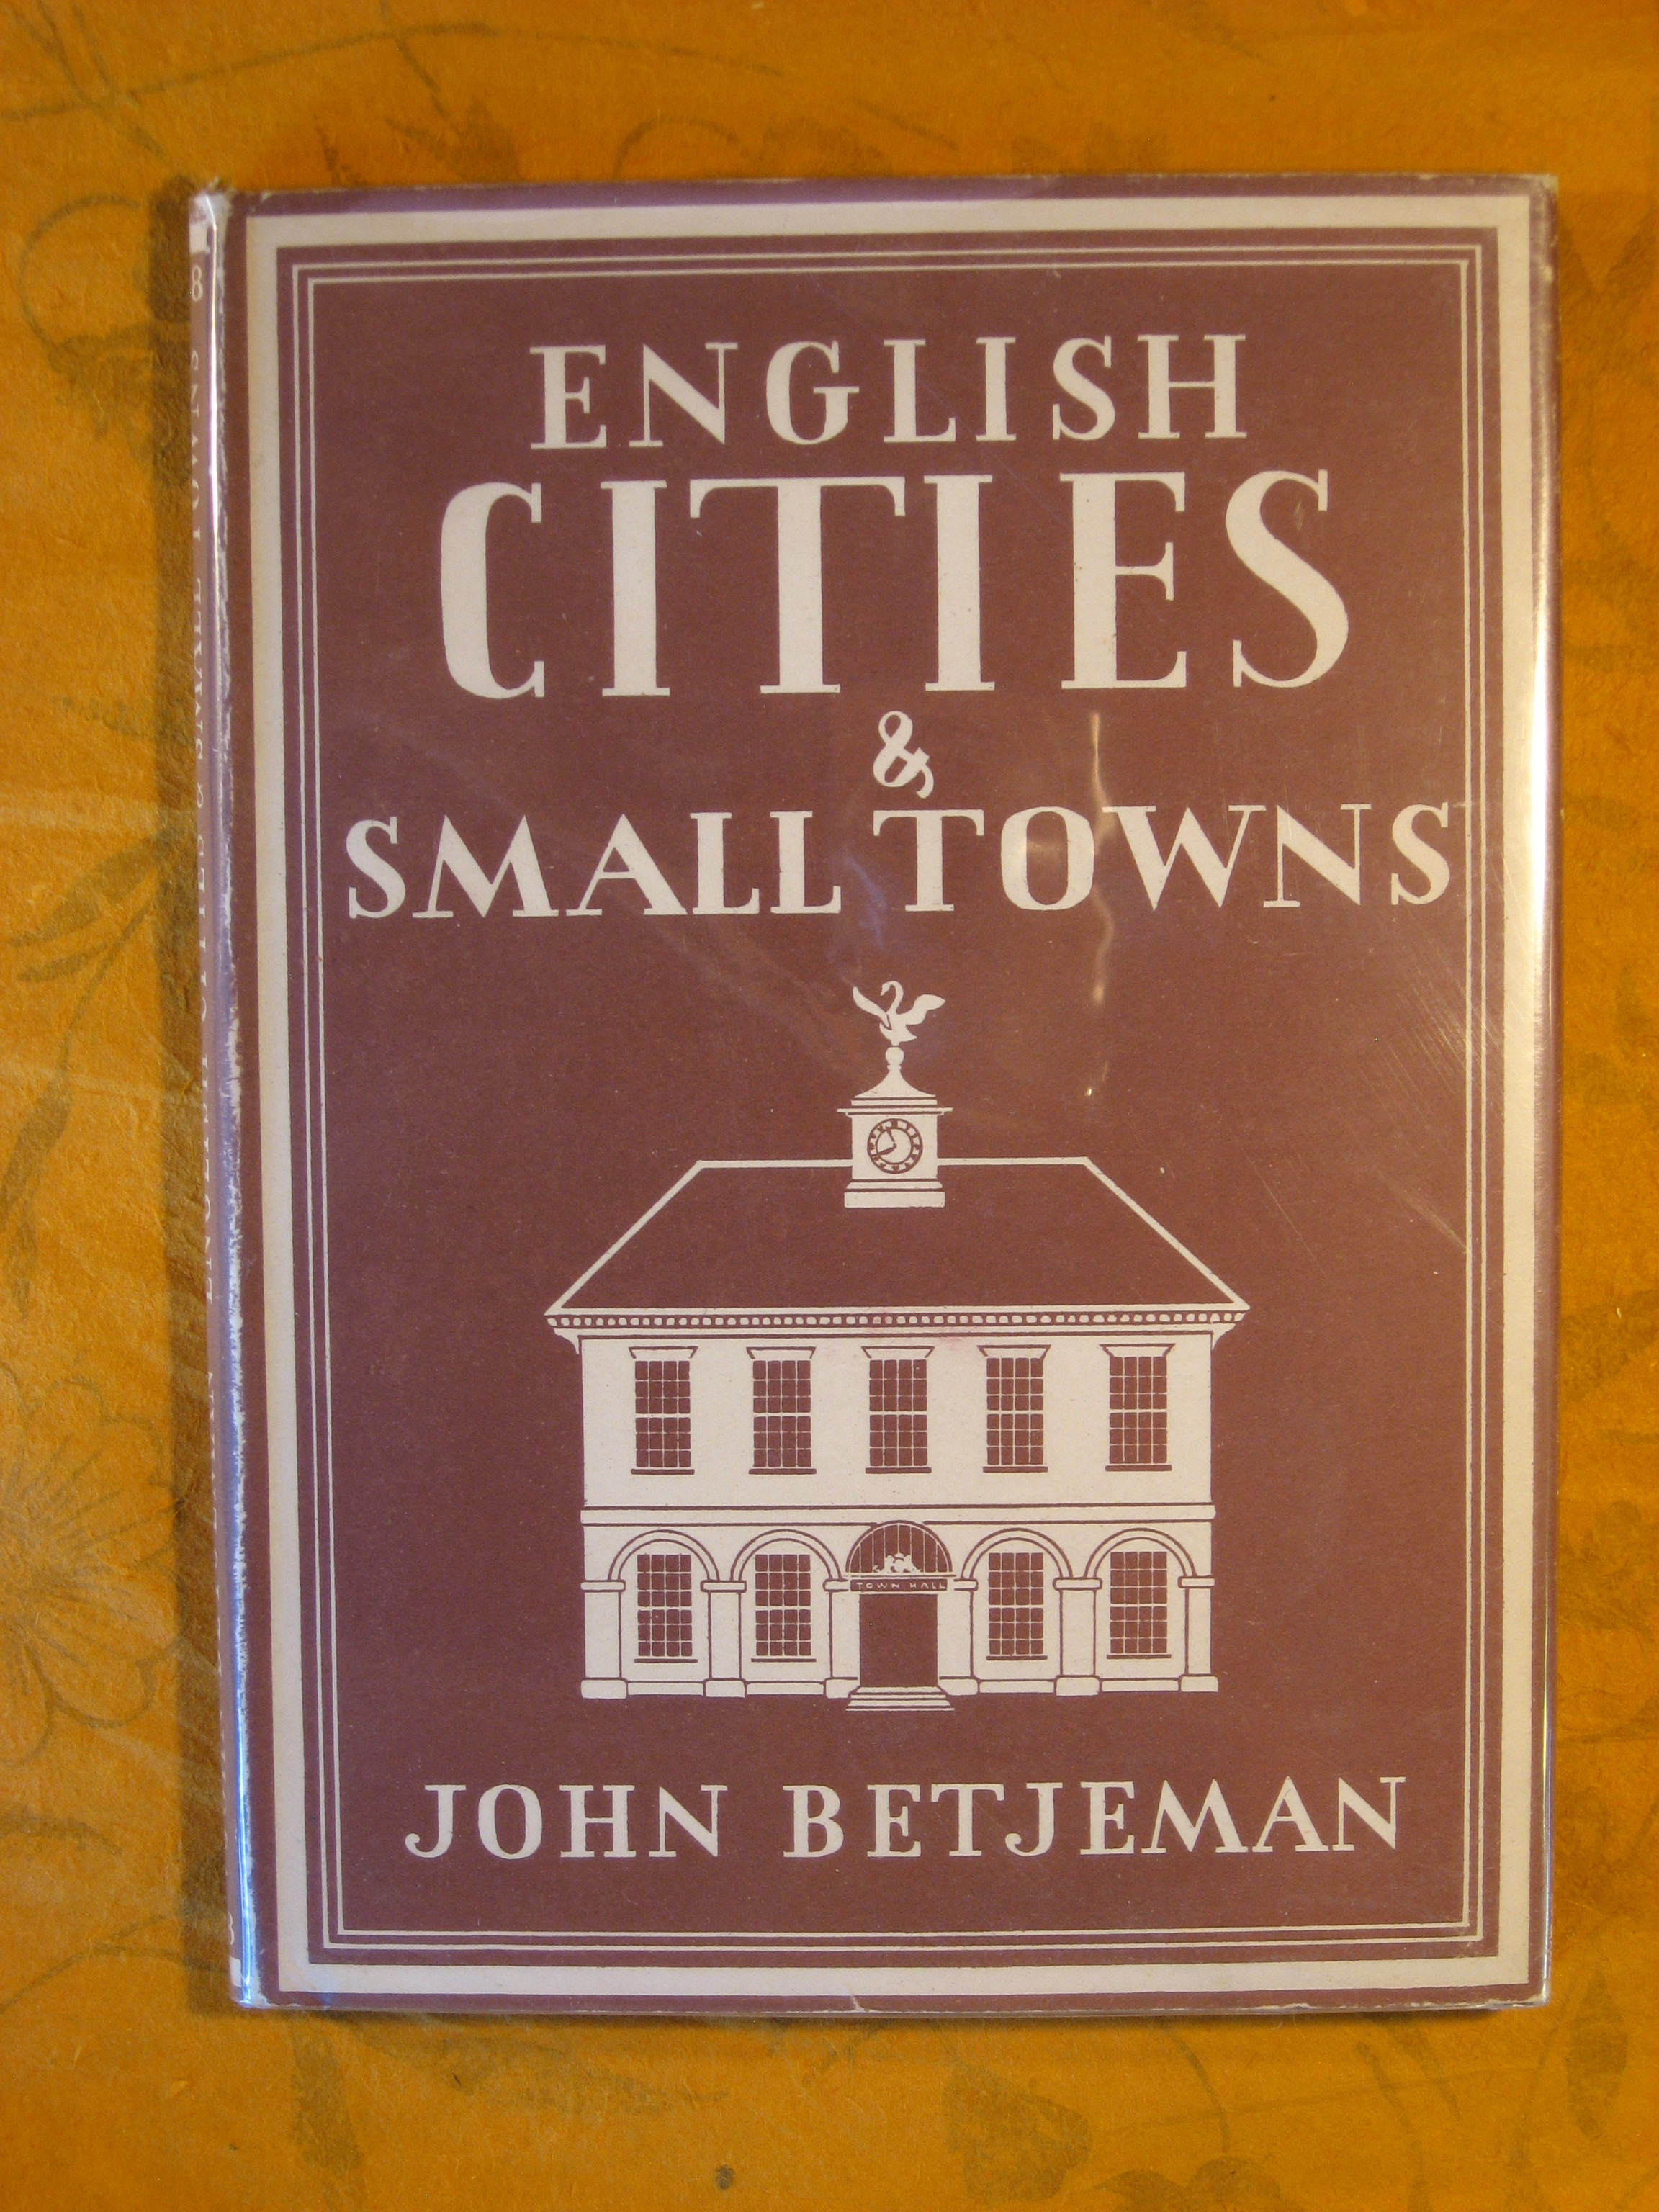 Image for English Cities and Small Towns (Britian in Pictures series)